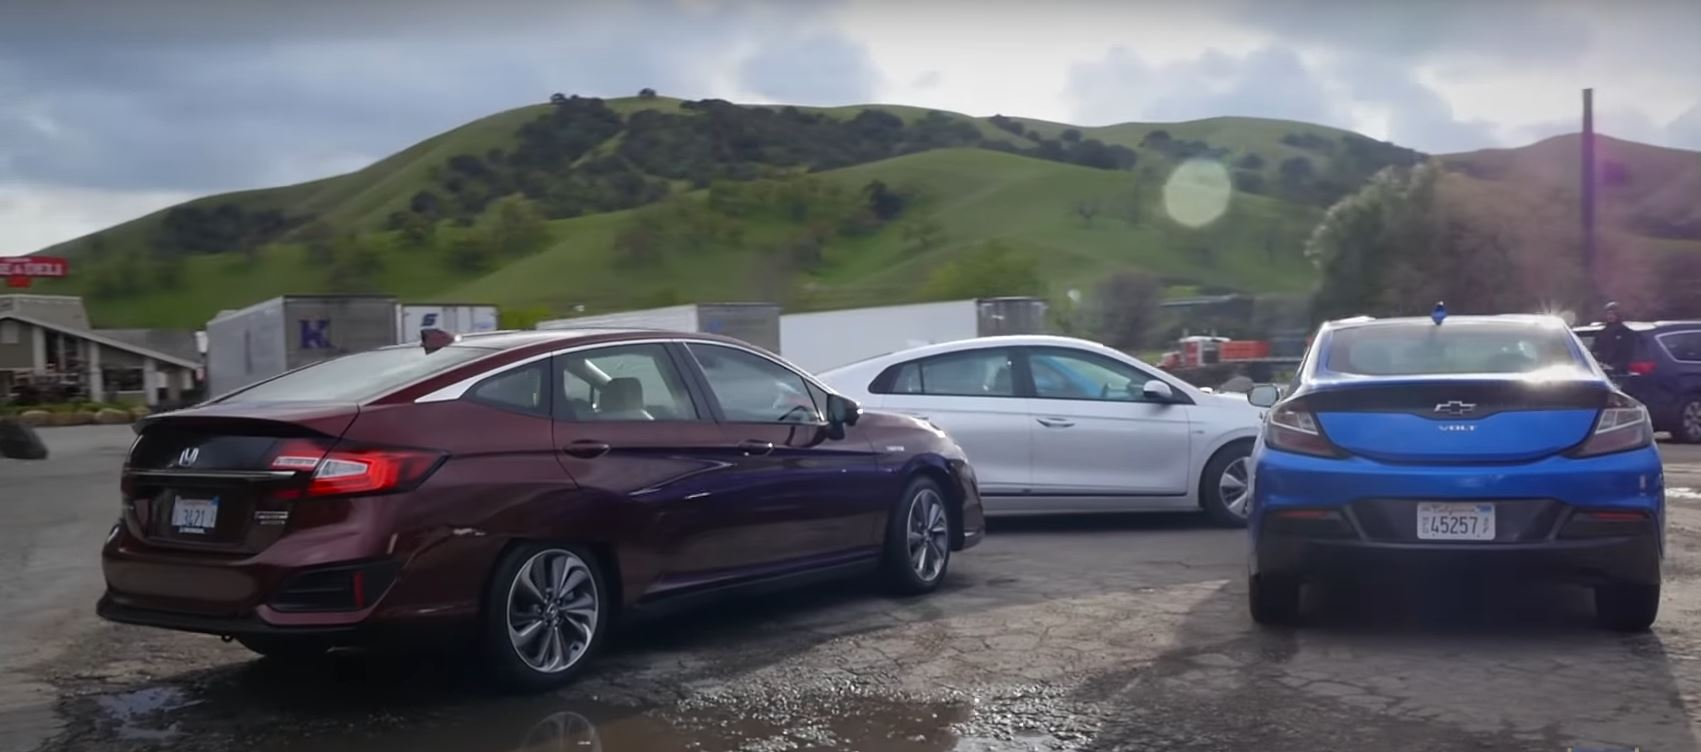 Best Phev Comparison Highlights Hyundai Ioniq Toyota Prius Chevy Volt And Honda Clarity